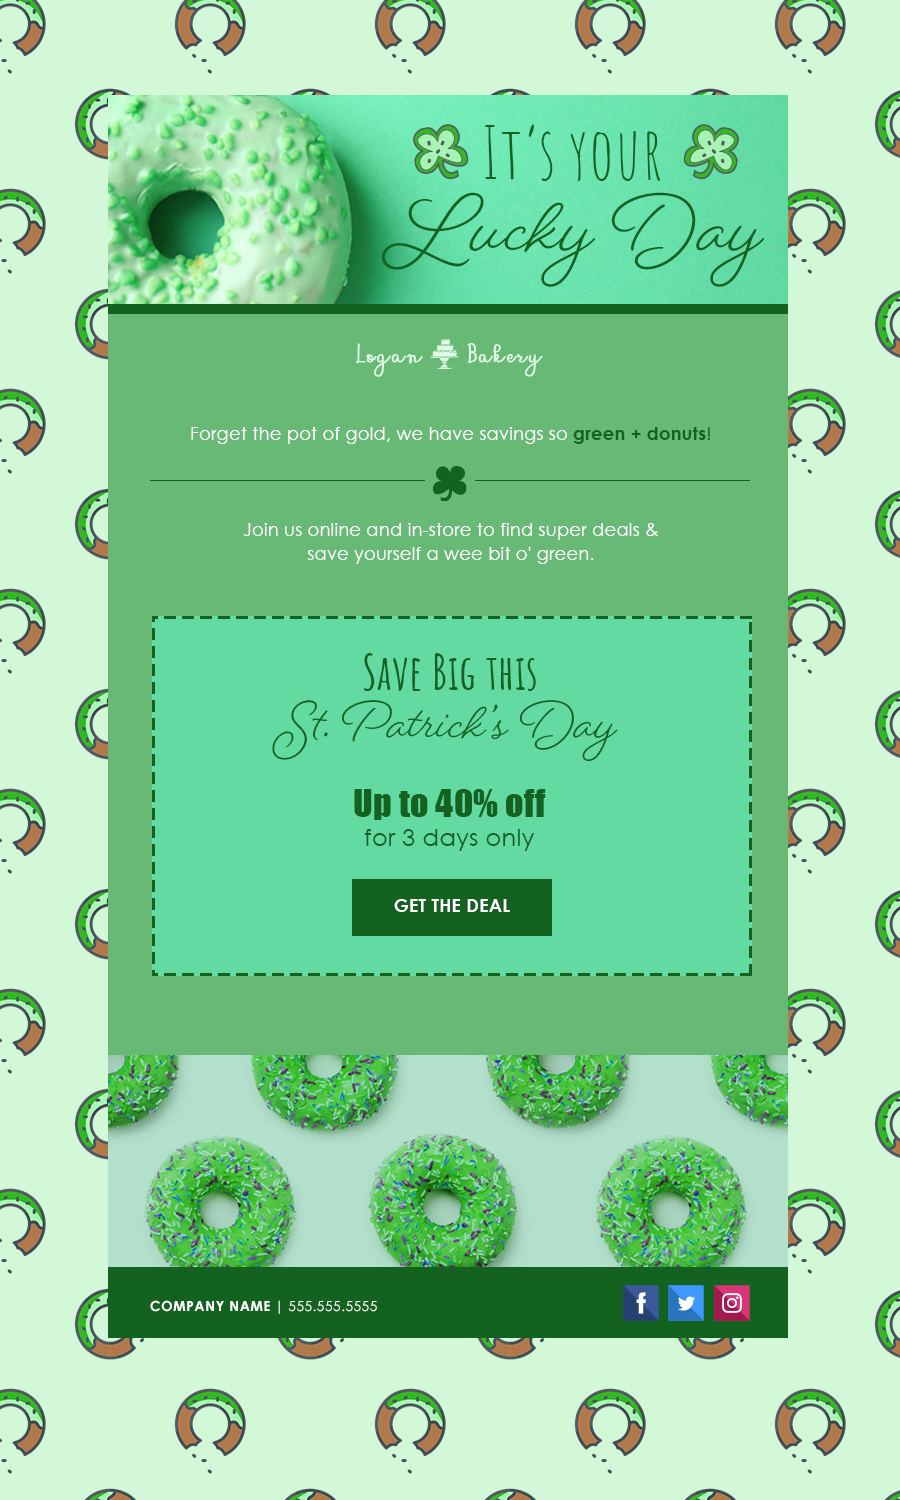 St Patrick's Day coupon email template